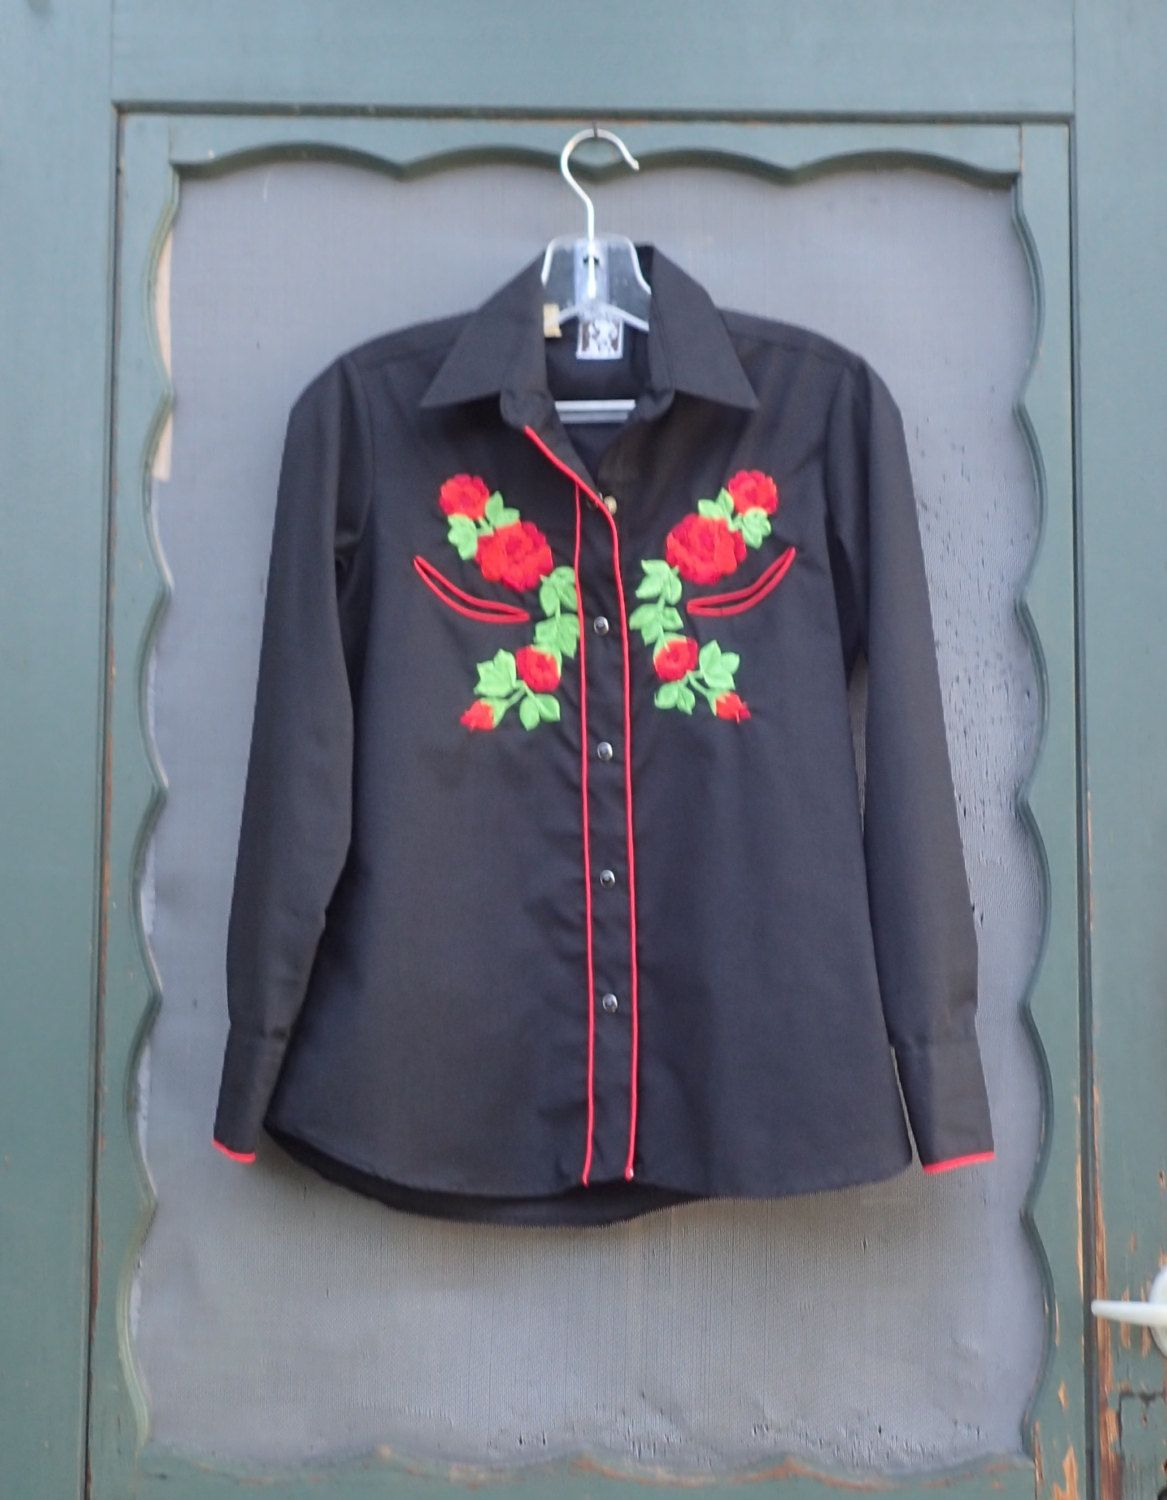 Vintage Woman's KARMAN Rose Embroidered Black Western Shirt  - Black Pearl Snap Cowgirl Shirt S-M by delilahsdeluxe on Etsy